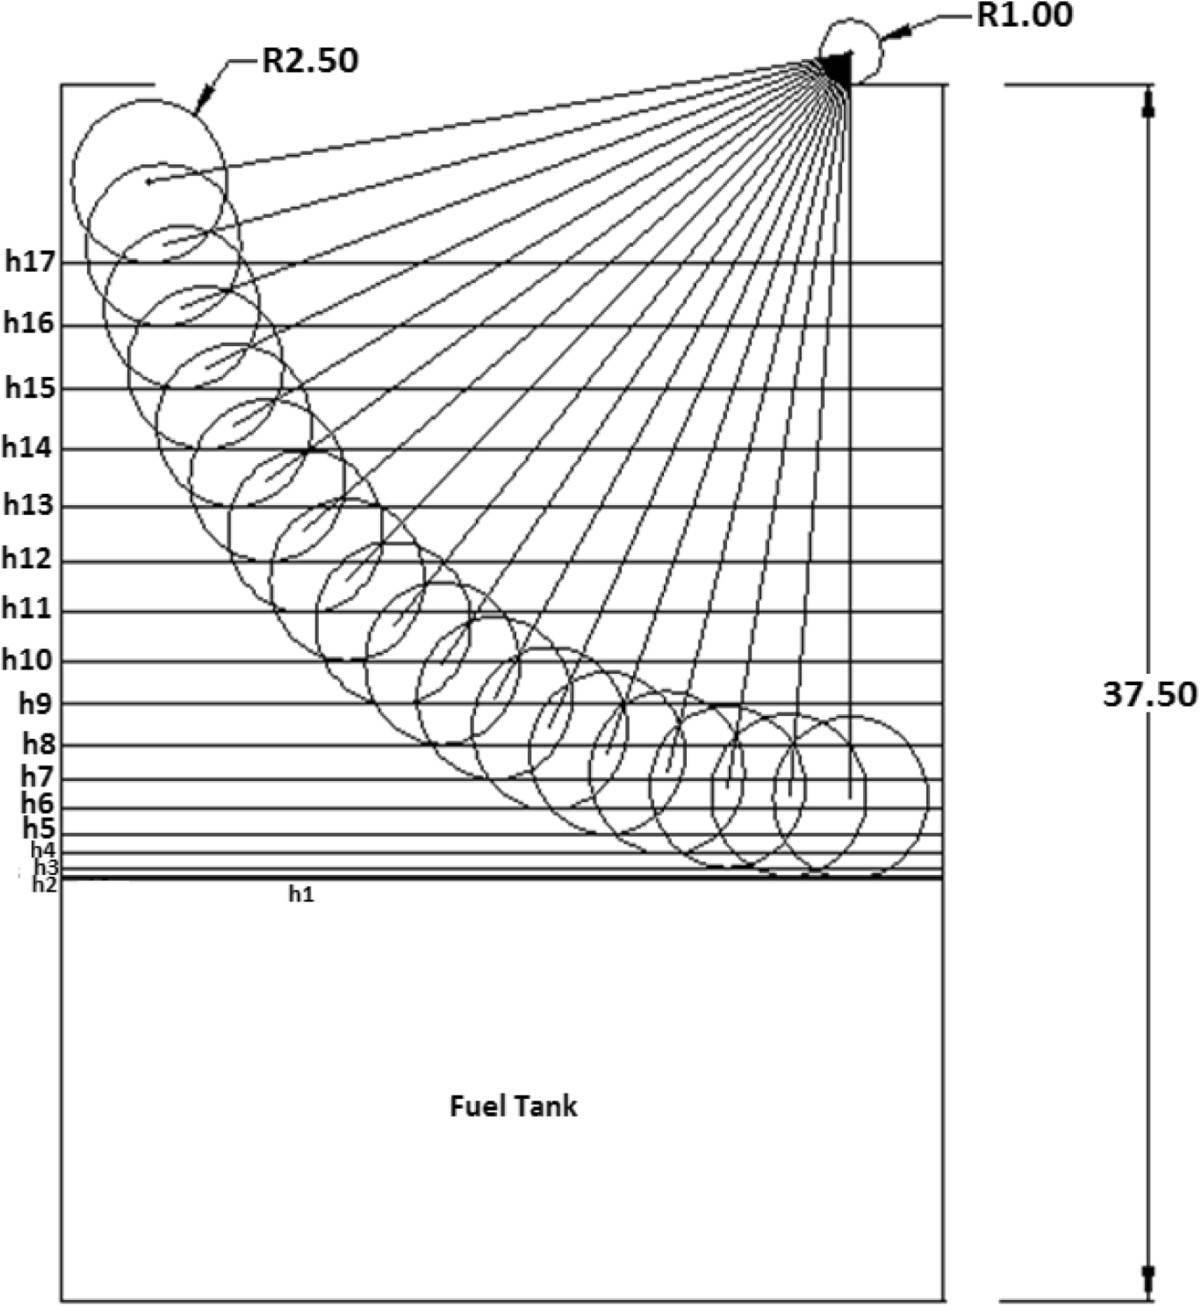 Design Construction And Implementation Of A Remote Fuel Level Http Wwwelectronicsprojectdesigncom Bargraphledhtml 5 Results